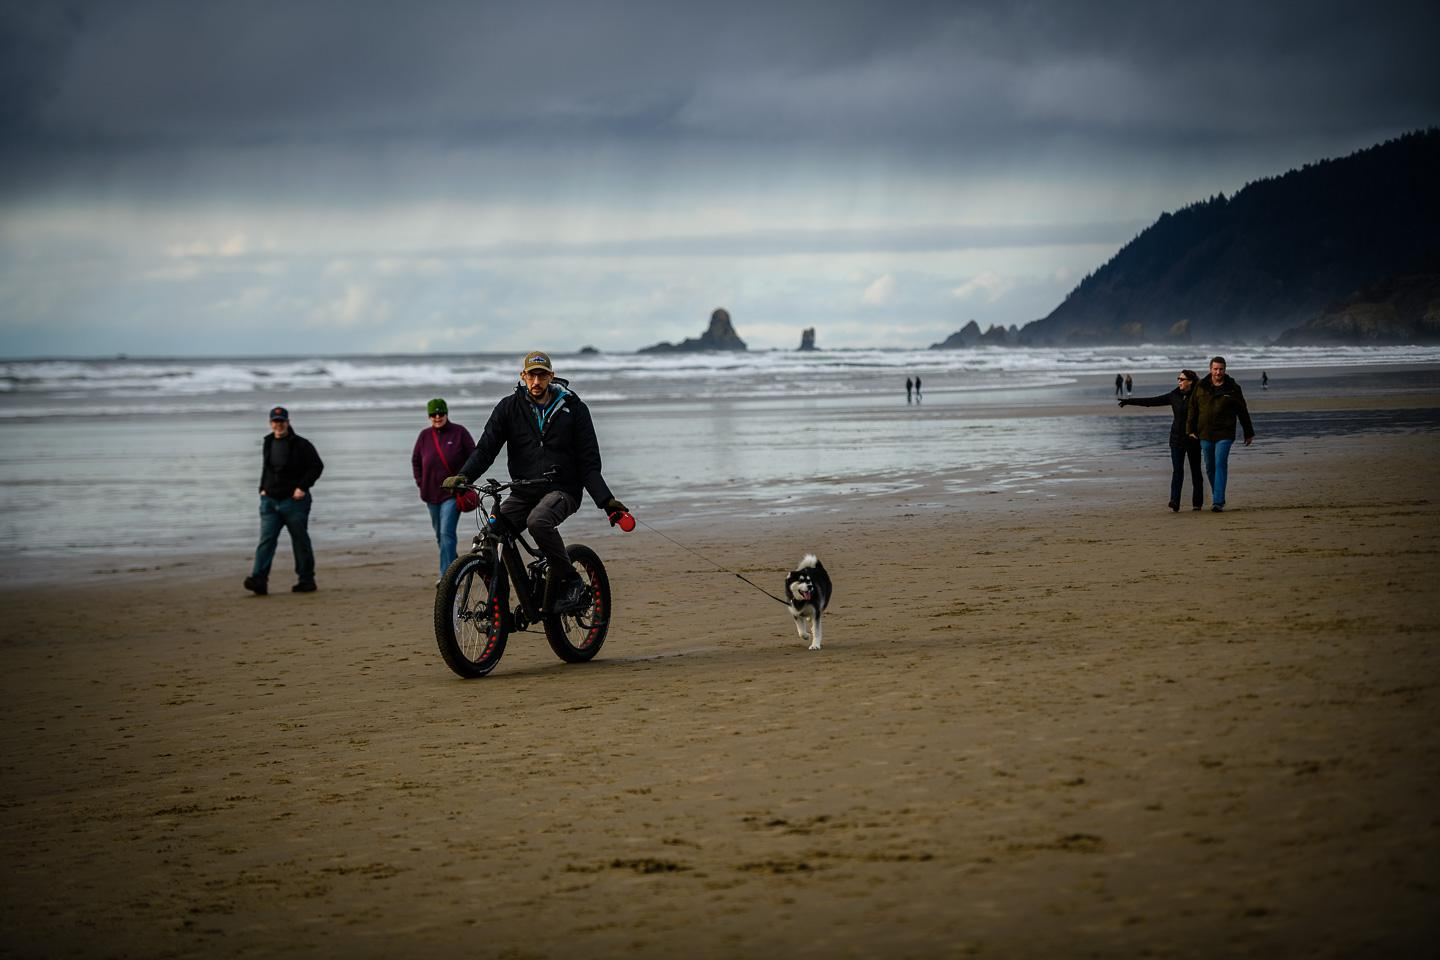 People on the Beach, with Dogs III